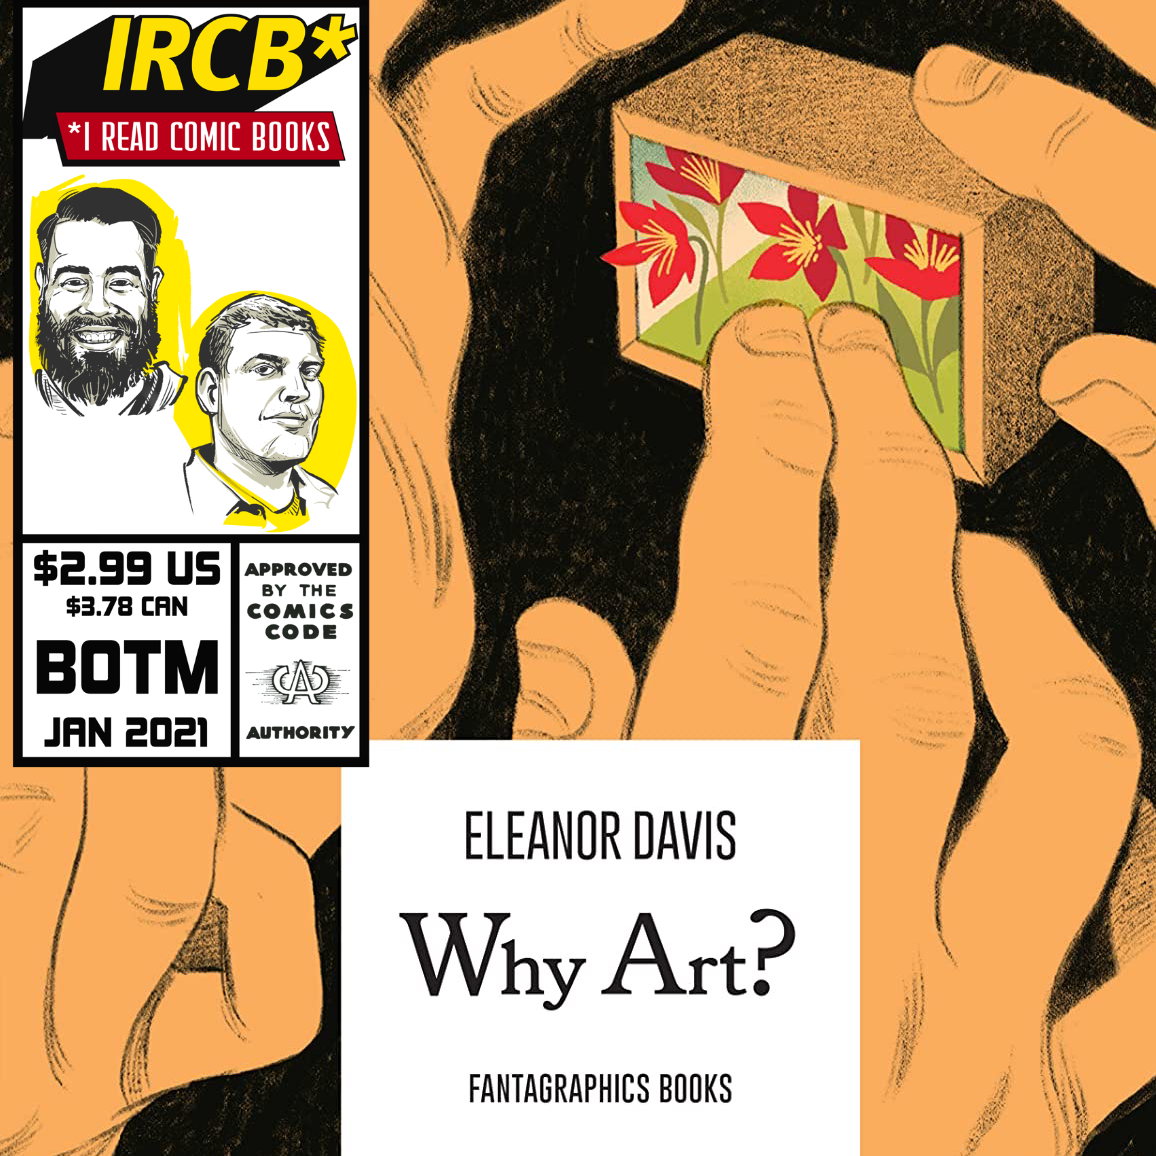 January 2021 Goodreads Book of the Month: Why Art?